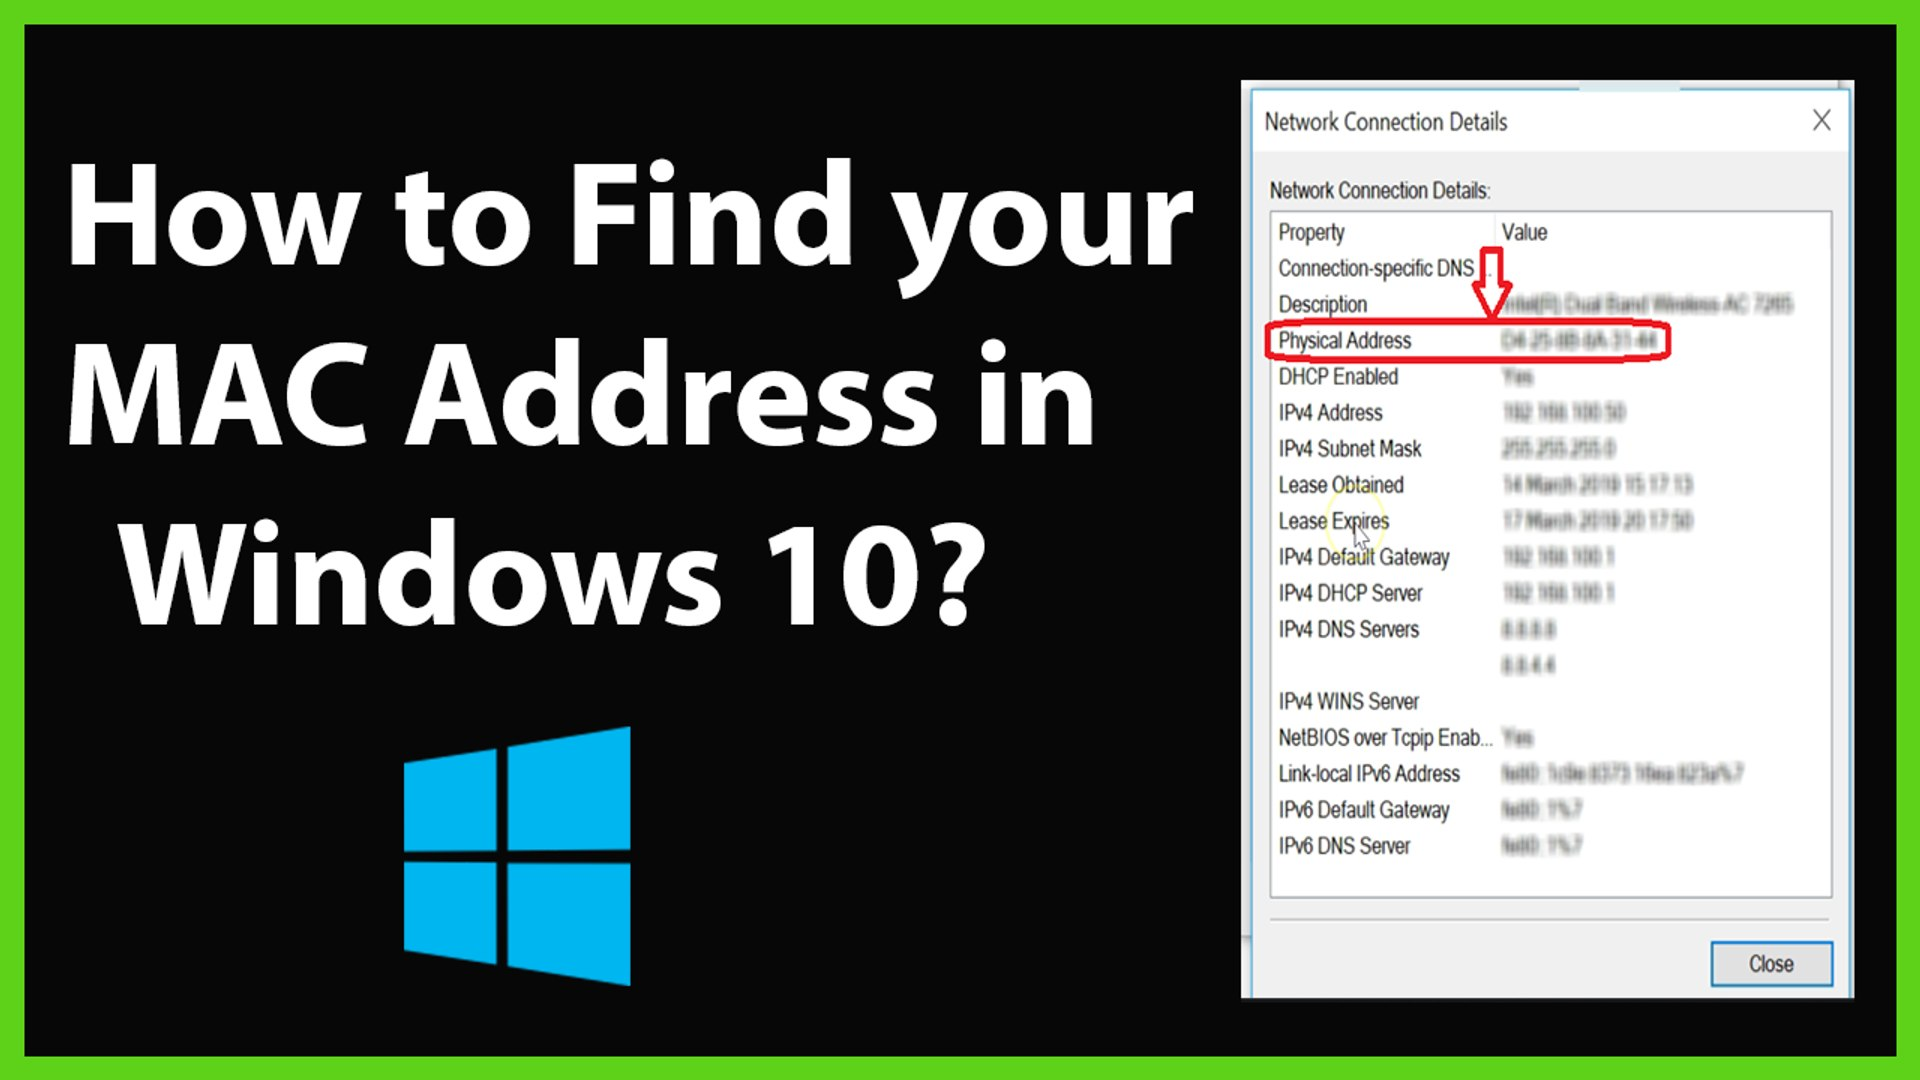 How to Find your MAC Address in Windows 10?